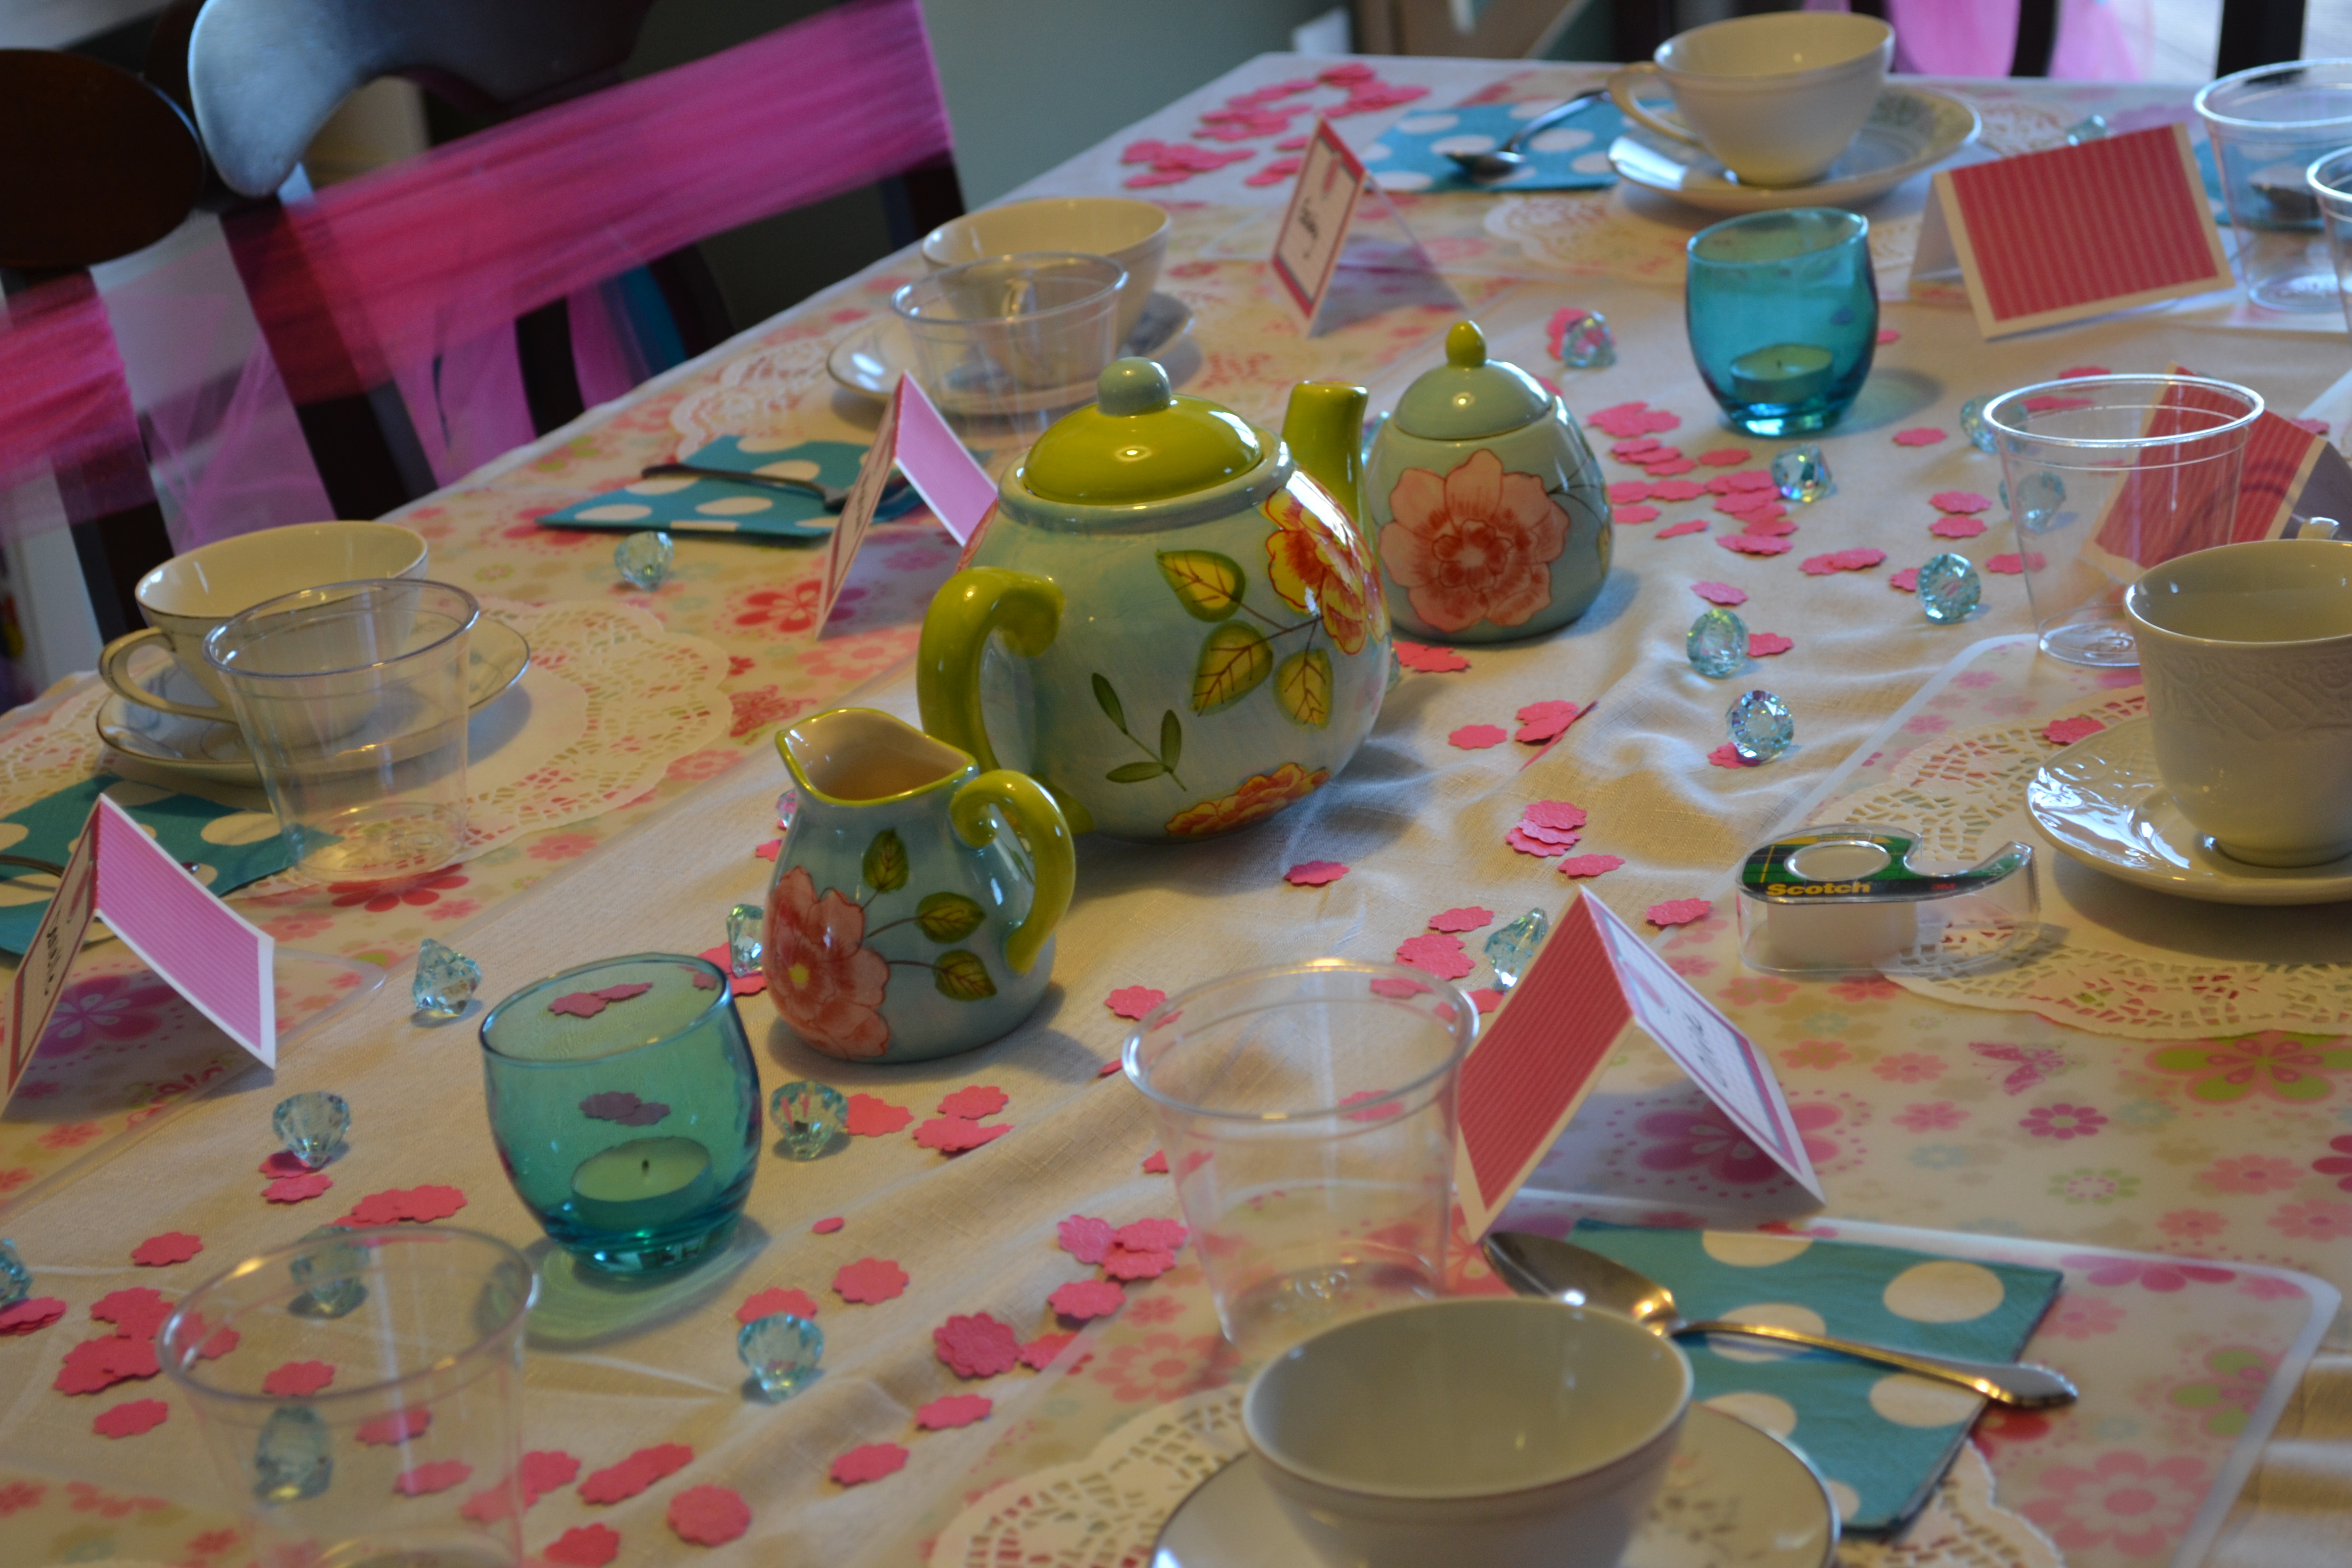 Dolly and me par tea workingmomsnetwork for Party table setting